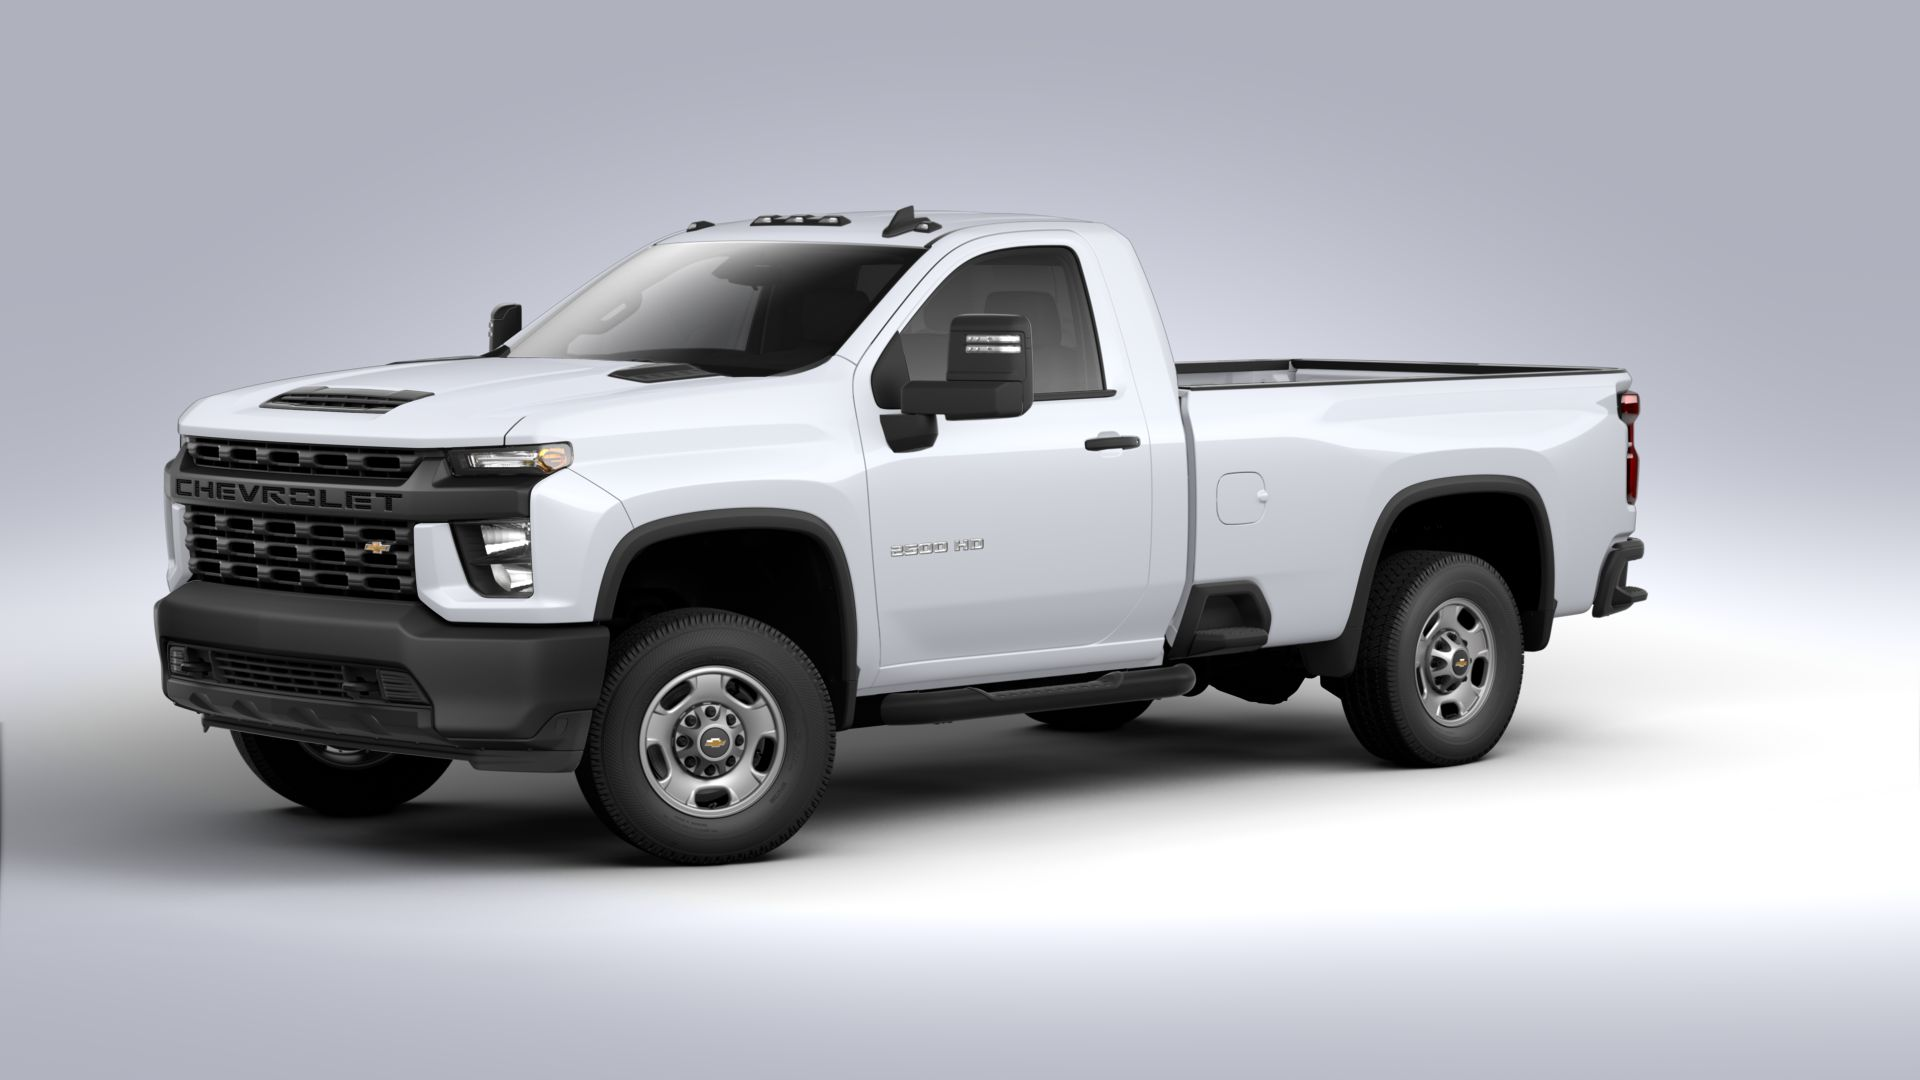 New 2020 Chevrolet Silverado 2500 HD WT REAR WHEEL DRIVE Regular Cab